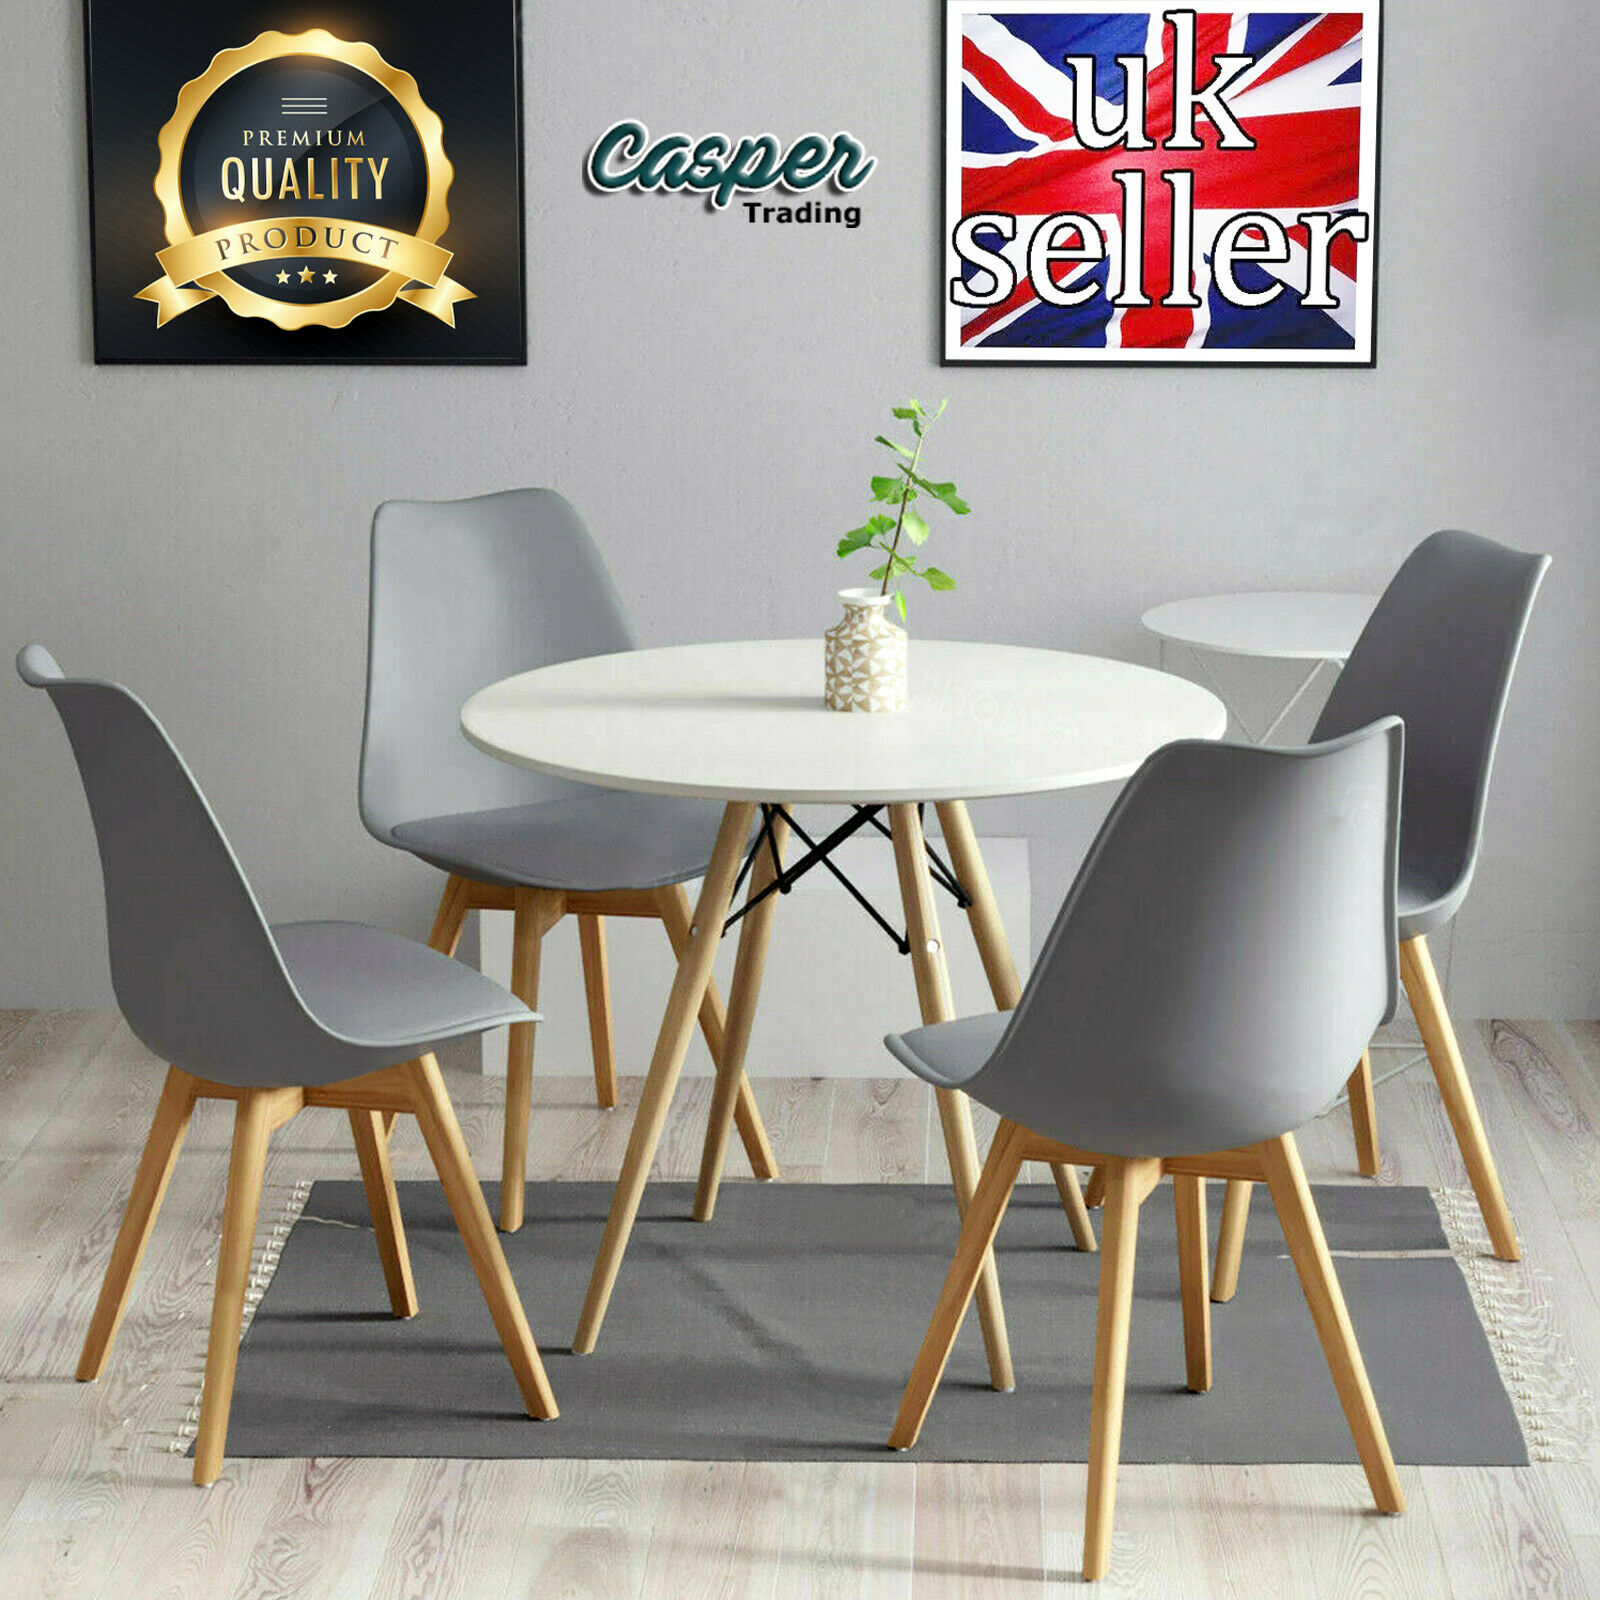 11cm White Round Dining Table And 11 Padded Tulip Chairs Grey Set Kitchen  Cafe UK